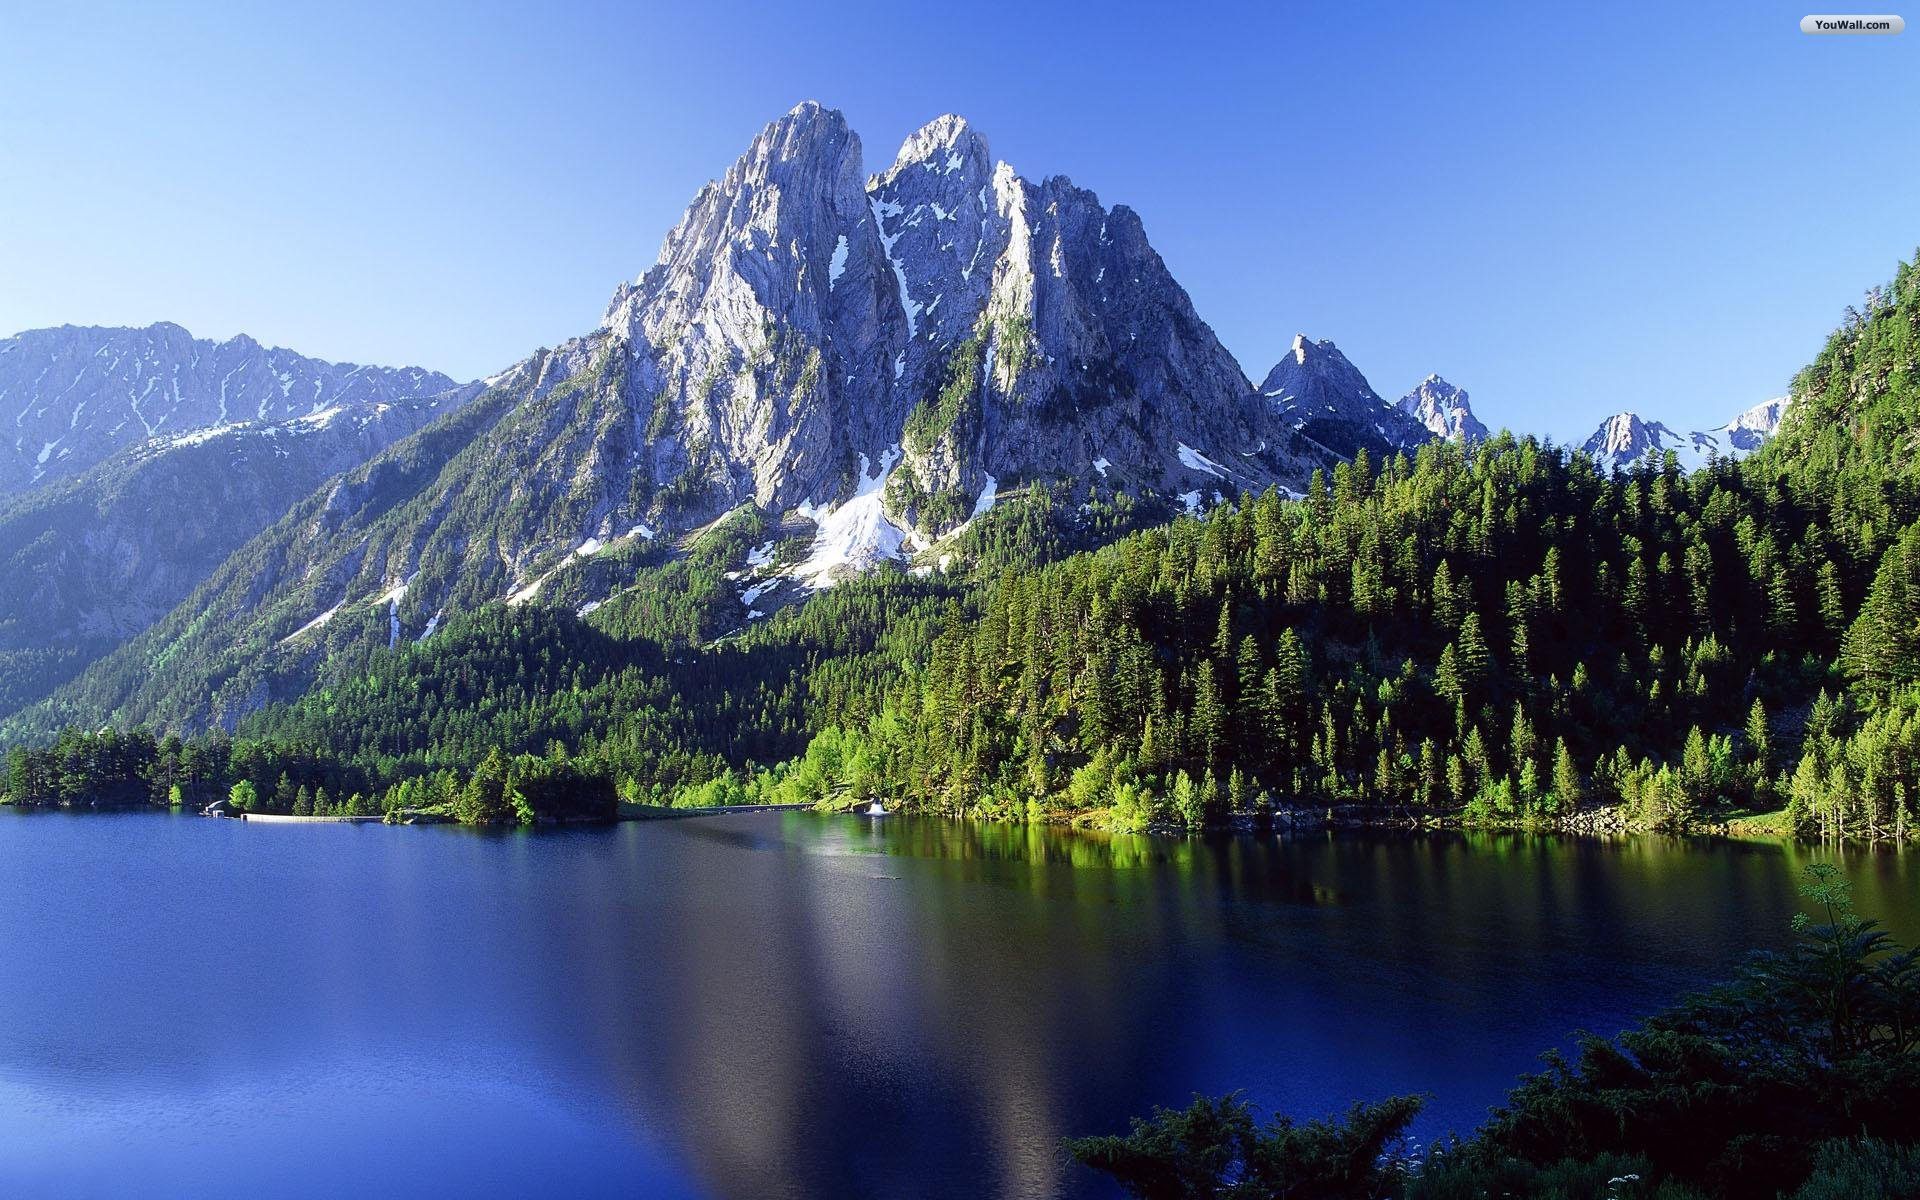 Beautiful mountain wallpapers hd 2669 wallpaper walldiskpaper beautiful mountain wallpapers hd voltagebd Choice Image